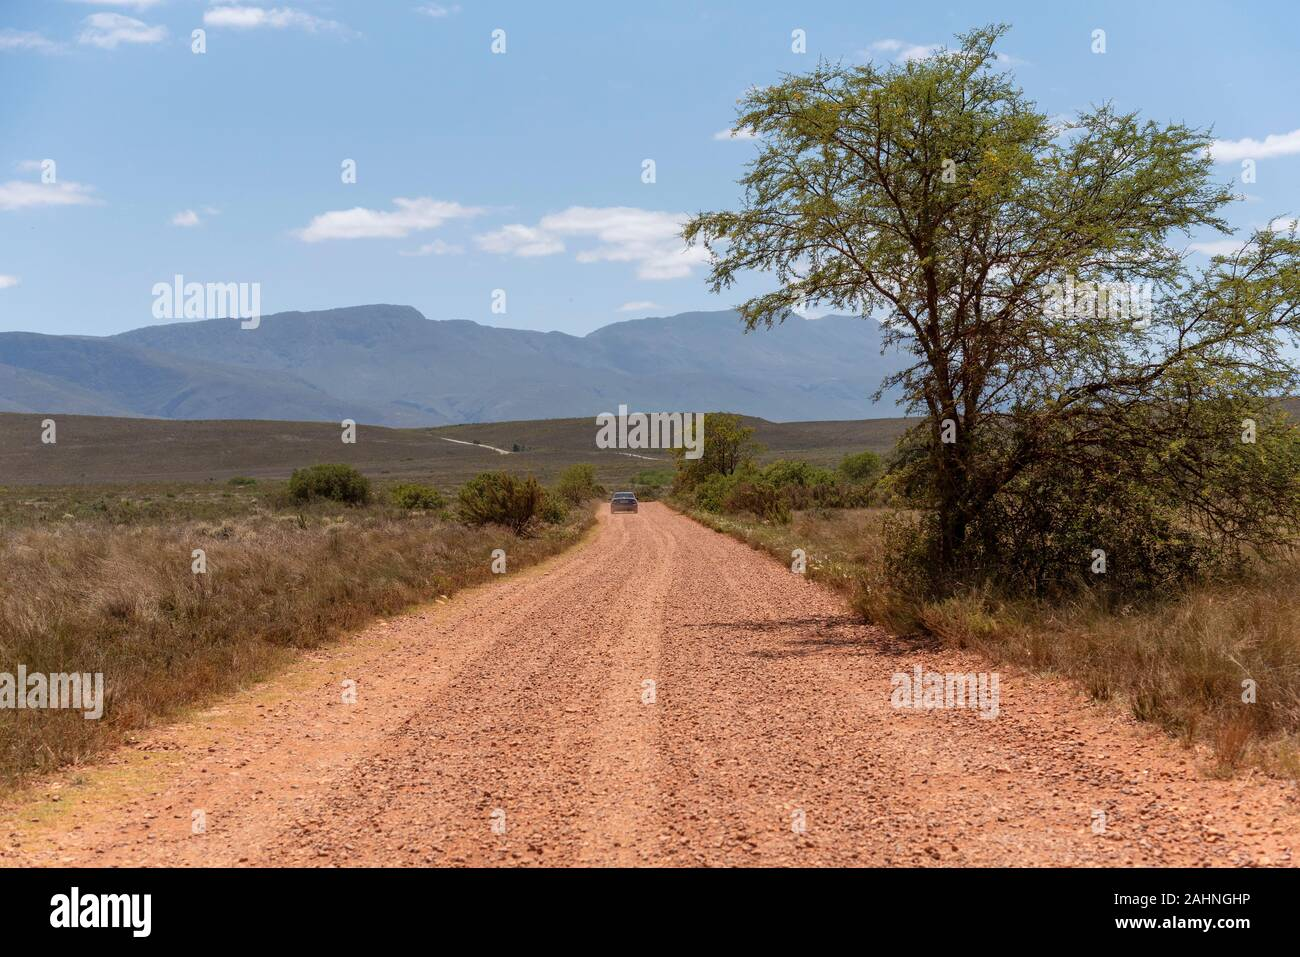 Swellendam, Western Cape, South Africa. December 2019. Dirt road heading for the Langeberg Mountains. Stock Photo